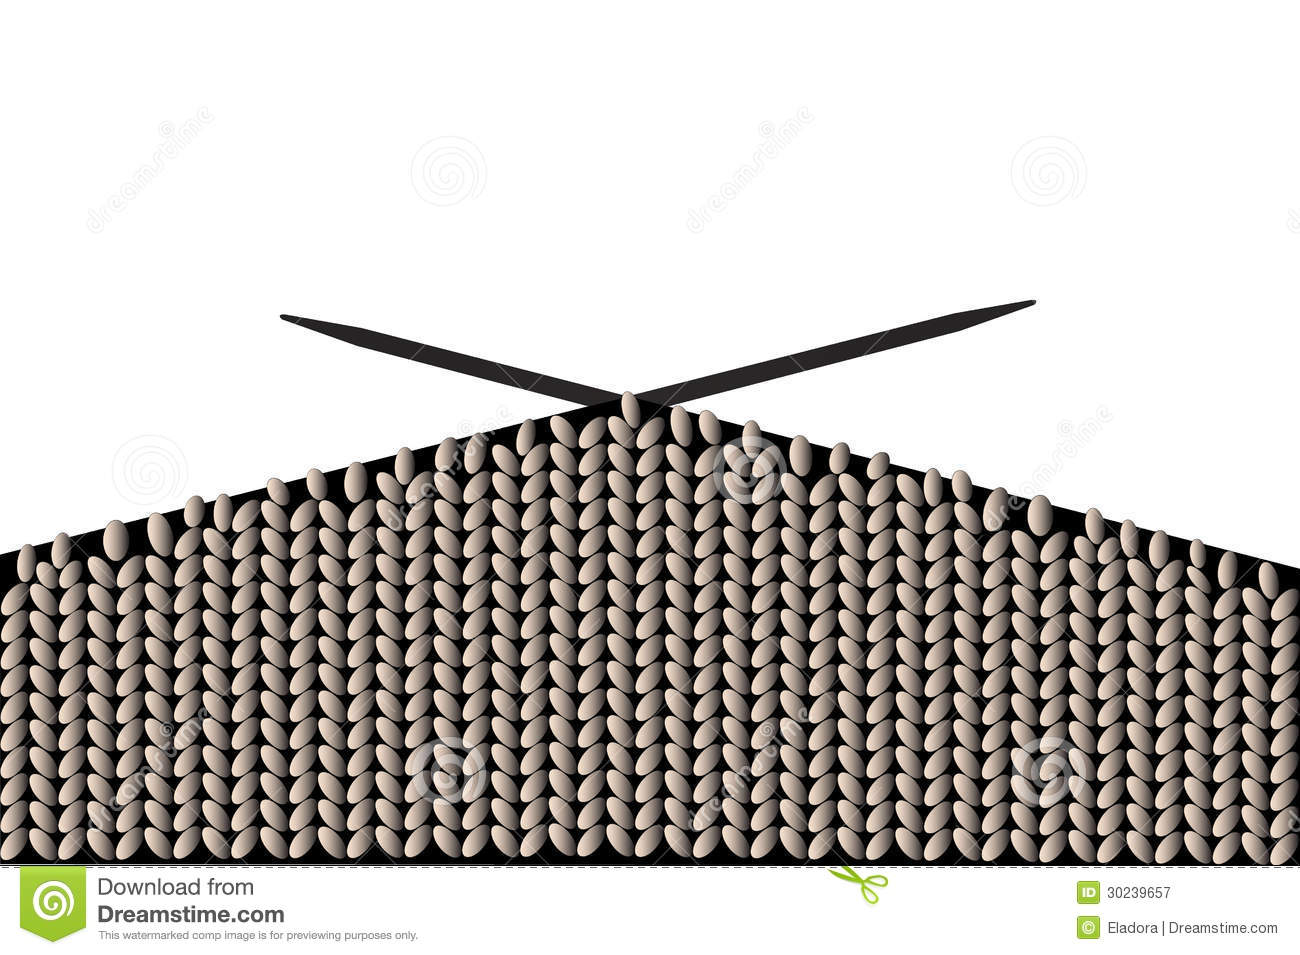 Knitting Stitches Vector : Knitting, Vector Royalty Free Stock Photography - Image: 30239657